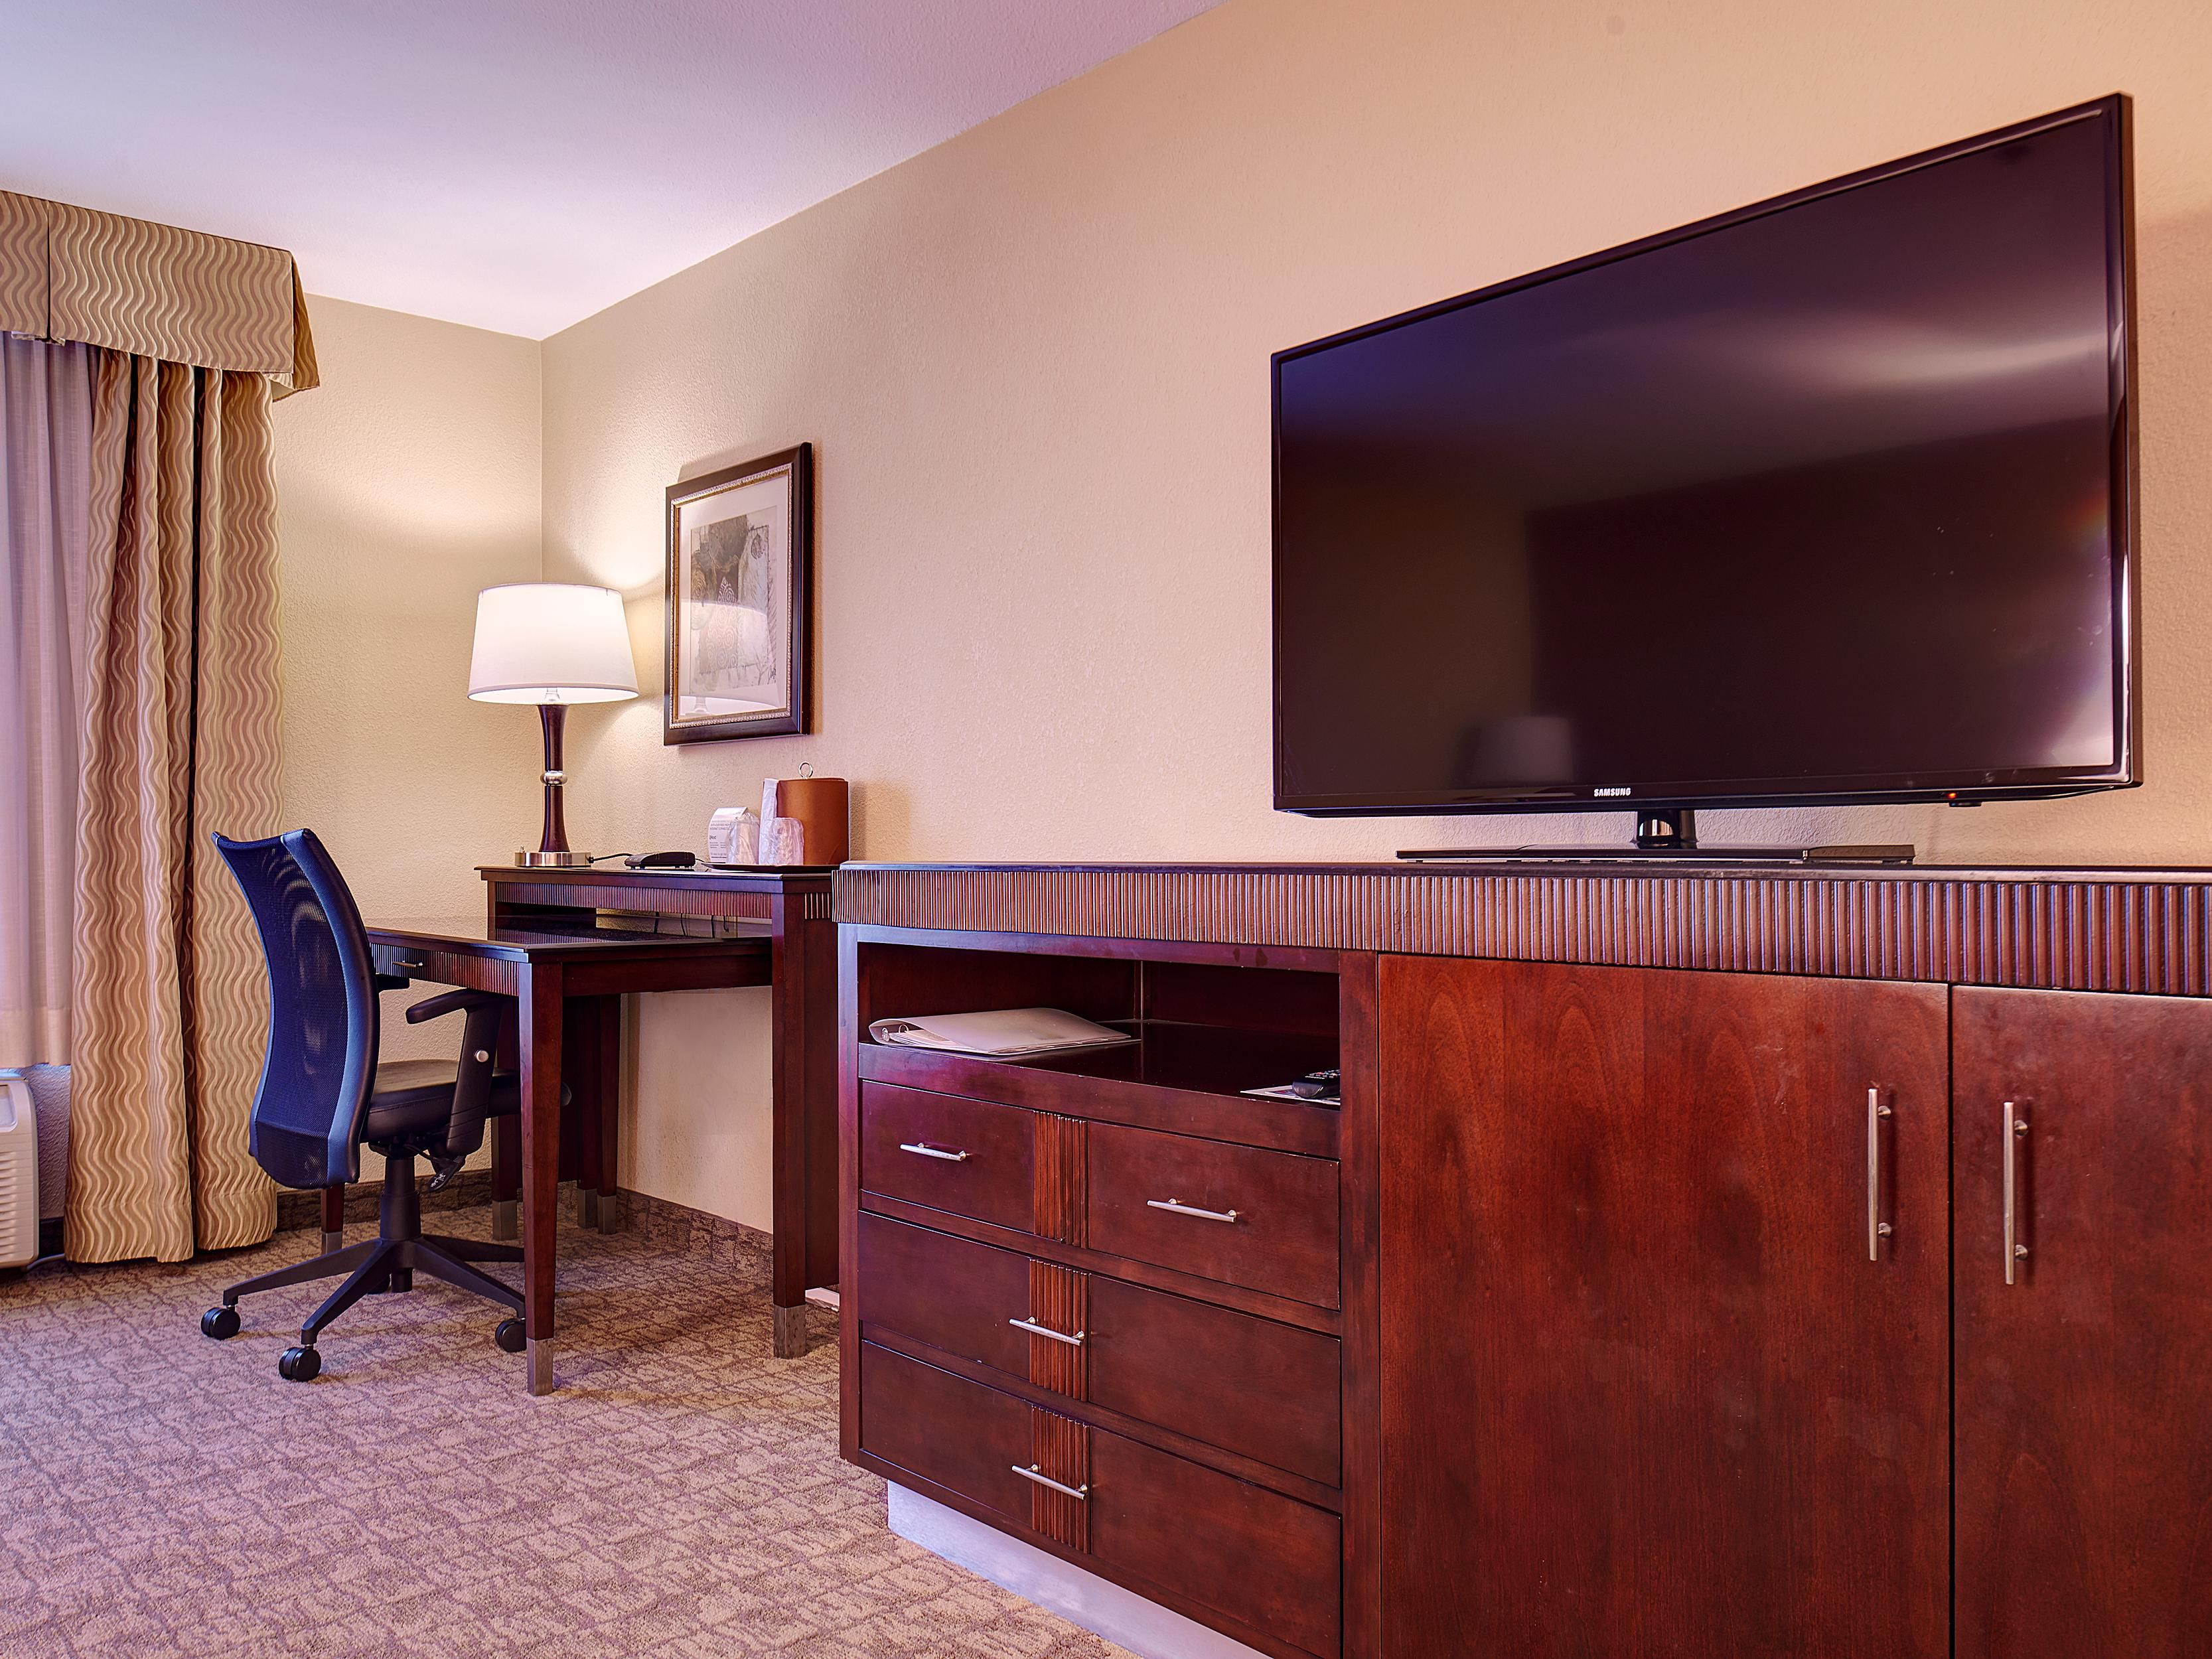 All rooms feature a microwave, fridge, and work desk.